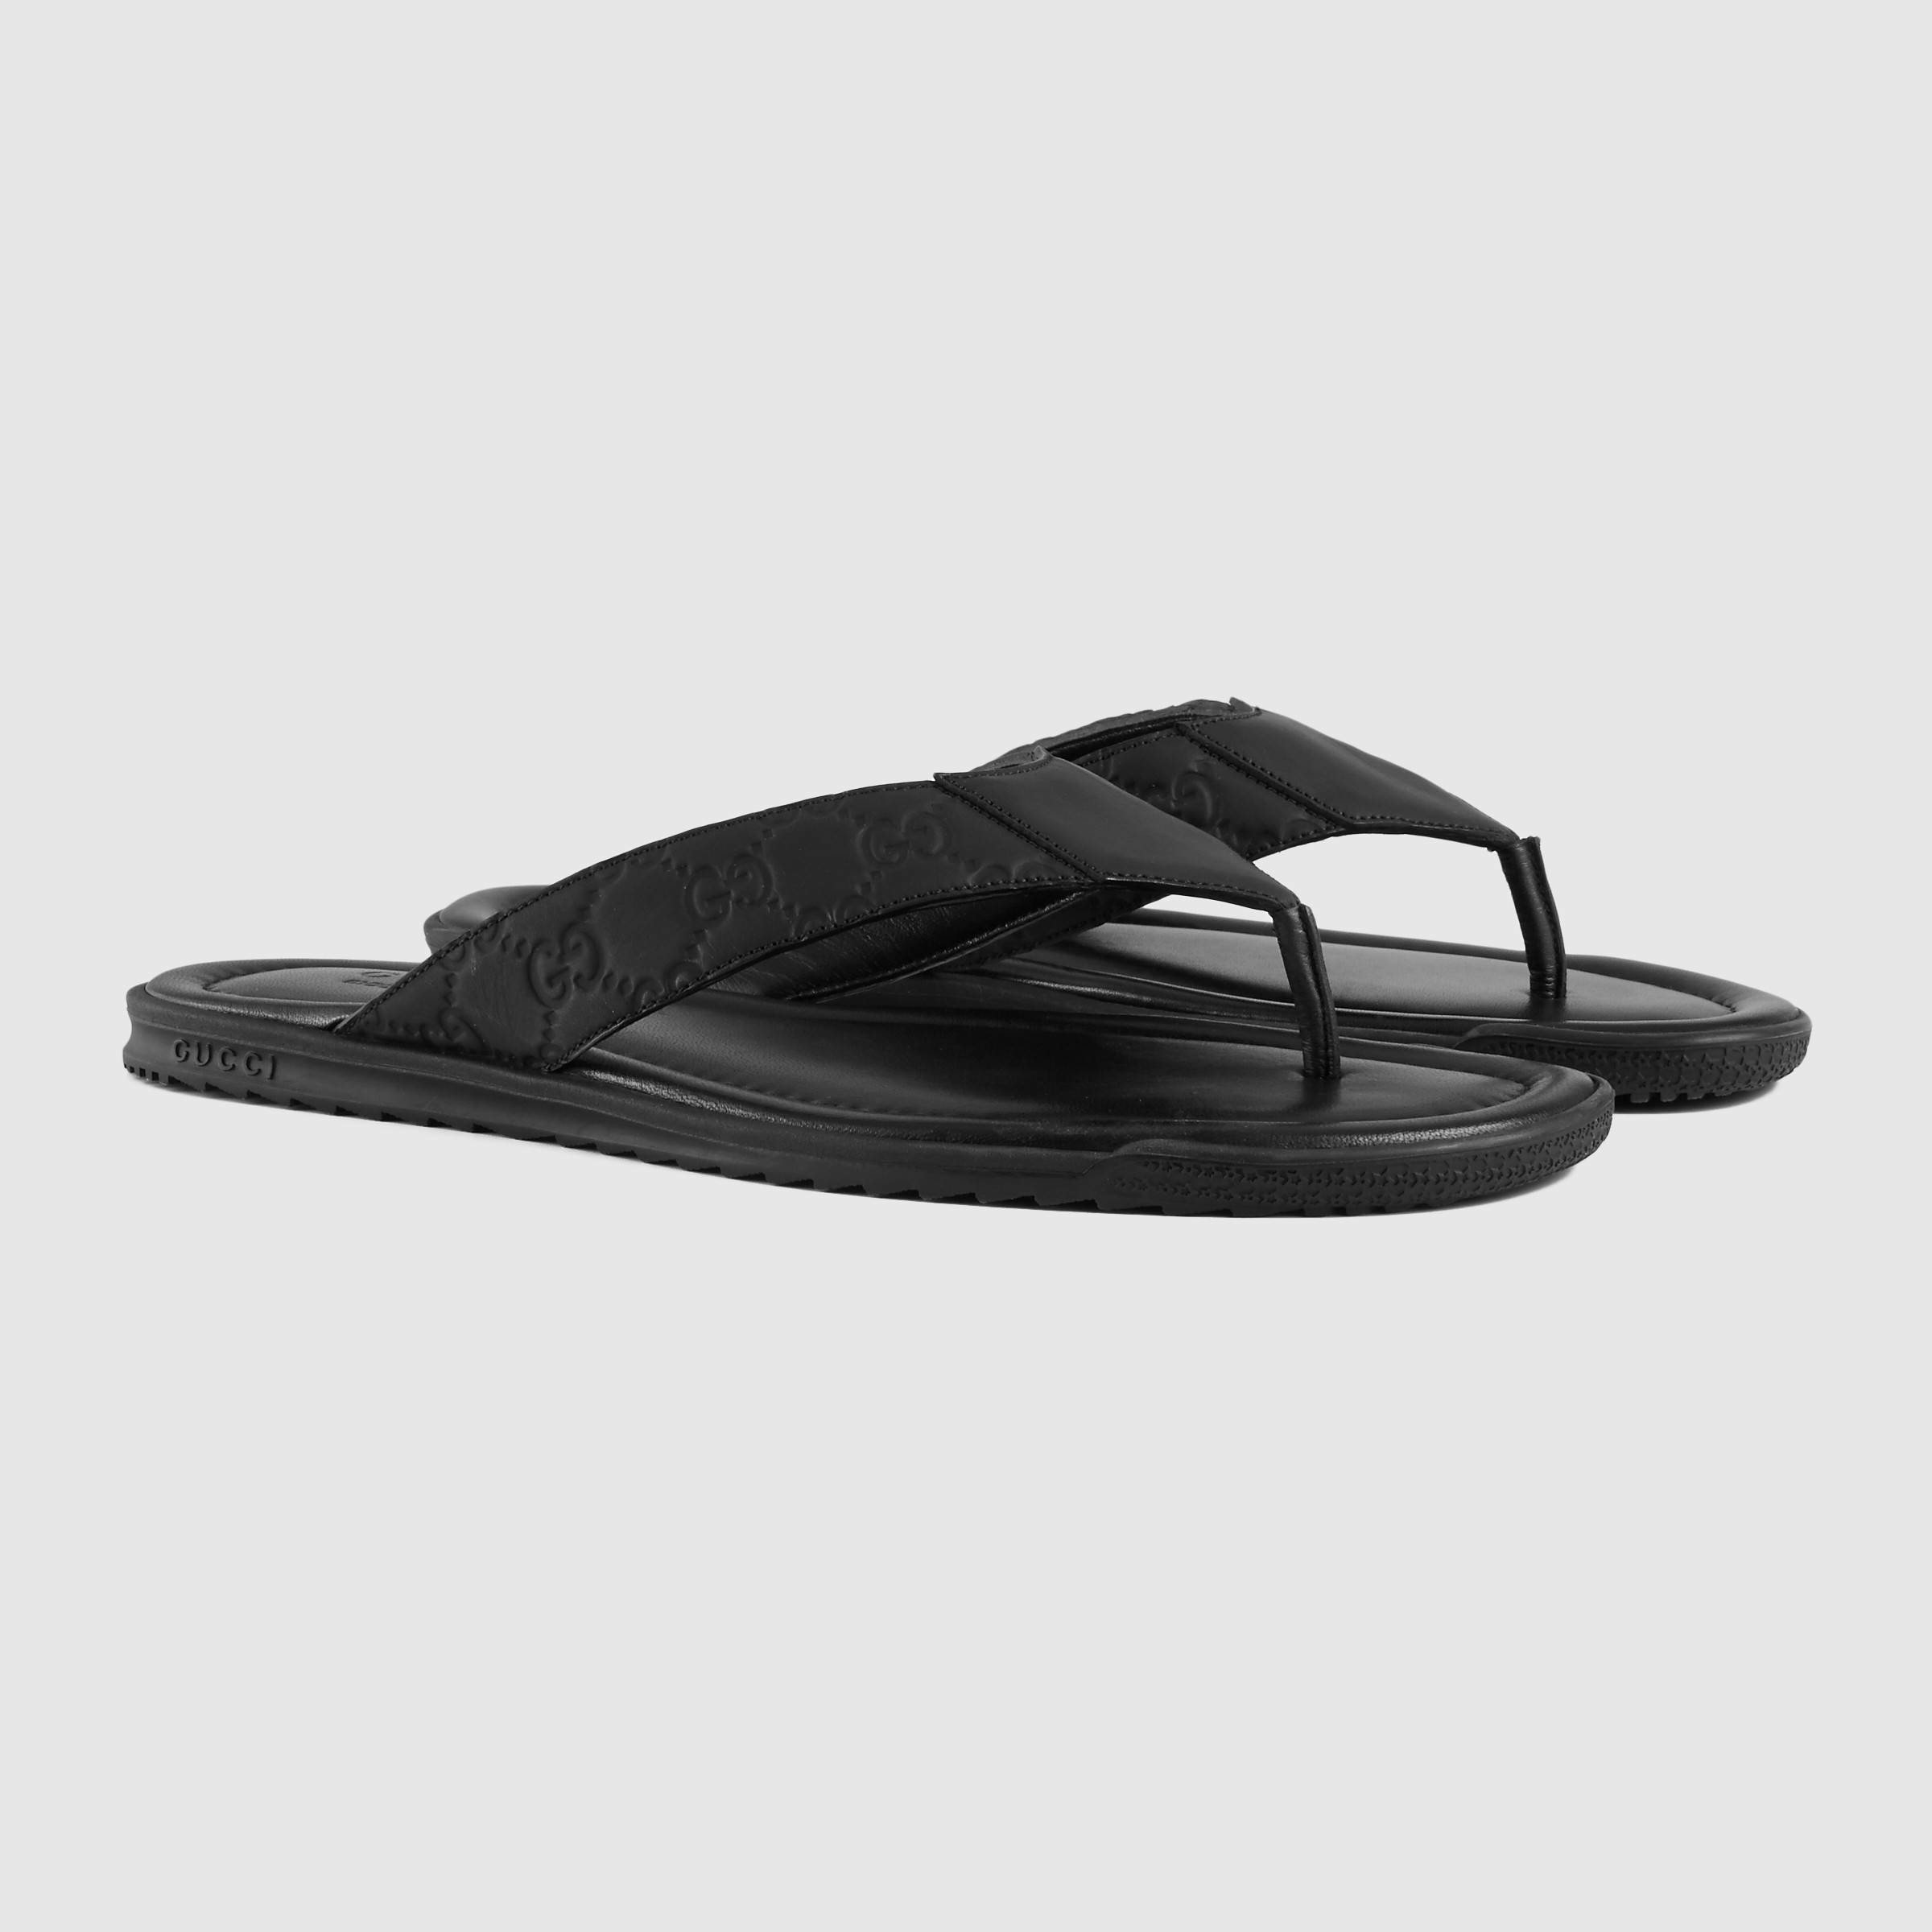 Lyst Gucci Rubberized Leather Thong Sandal In Black For Men